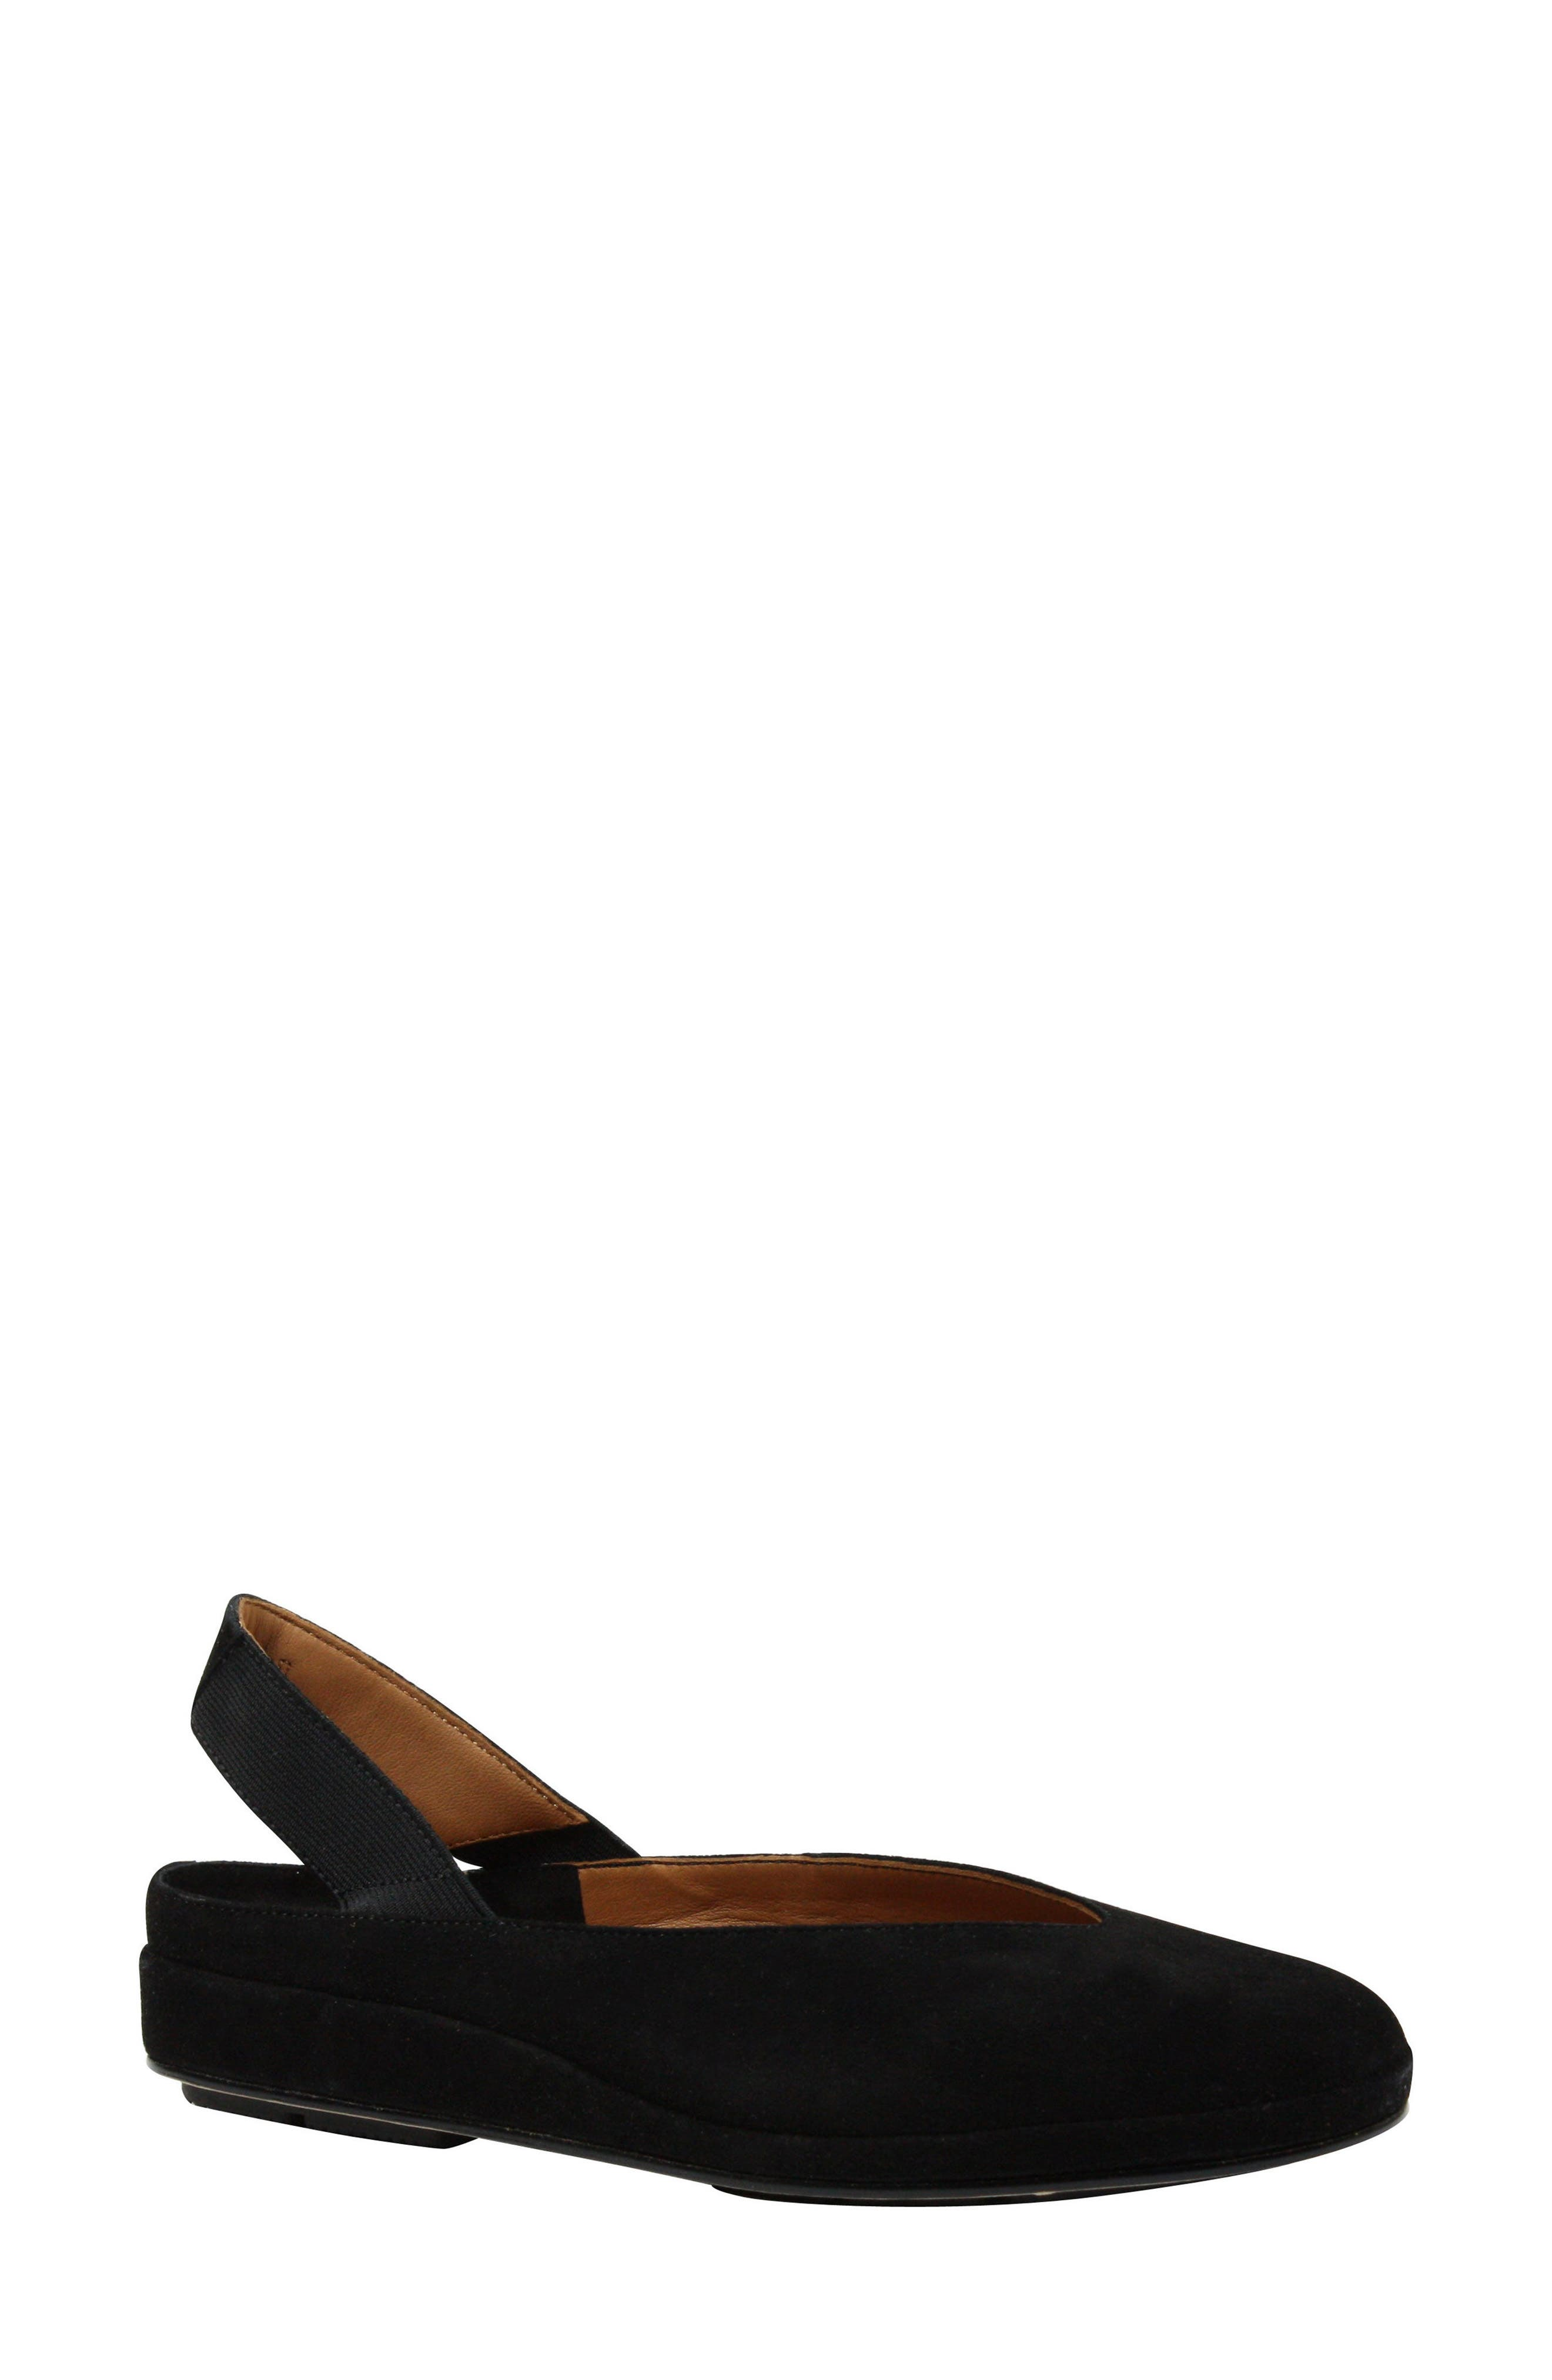 L'AMOUR DES PIEDS 'Cypris' Slingback Wedge, Main, color, BLACK SUEDE